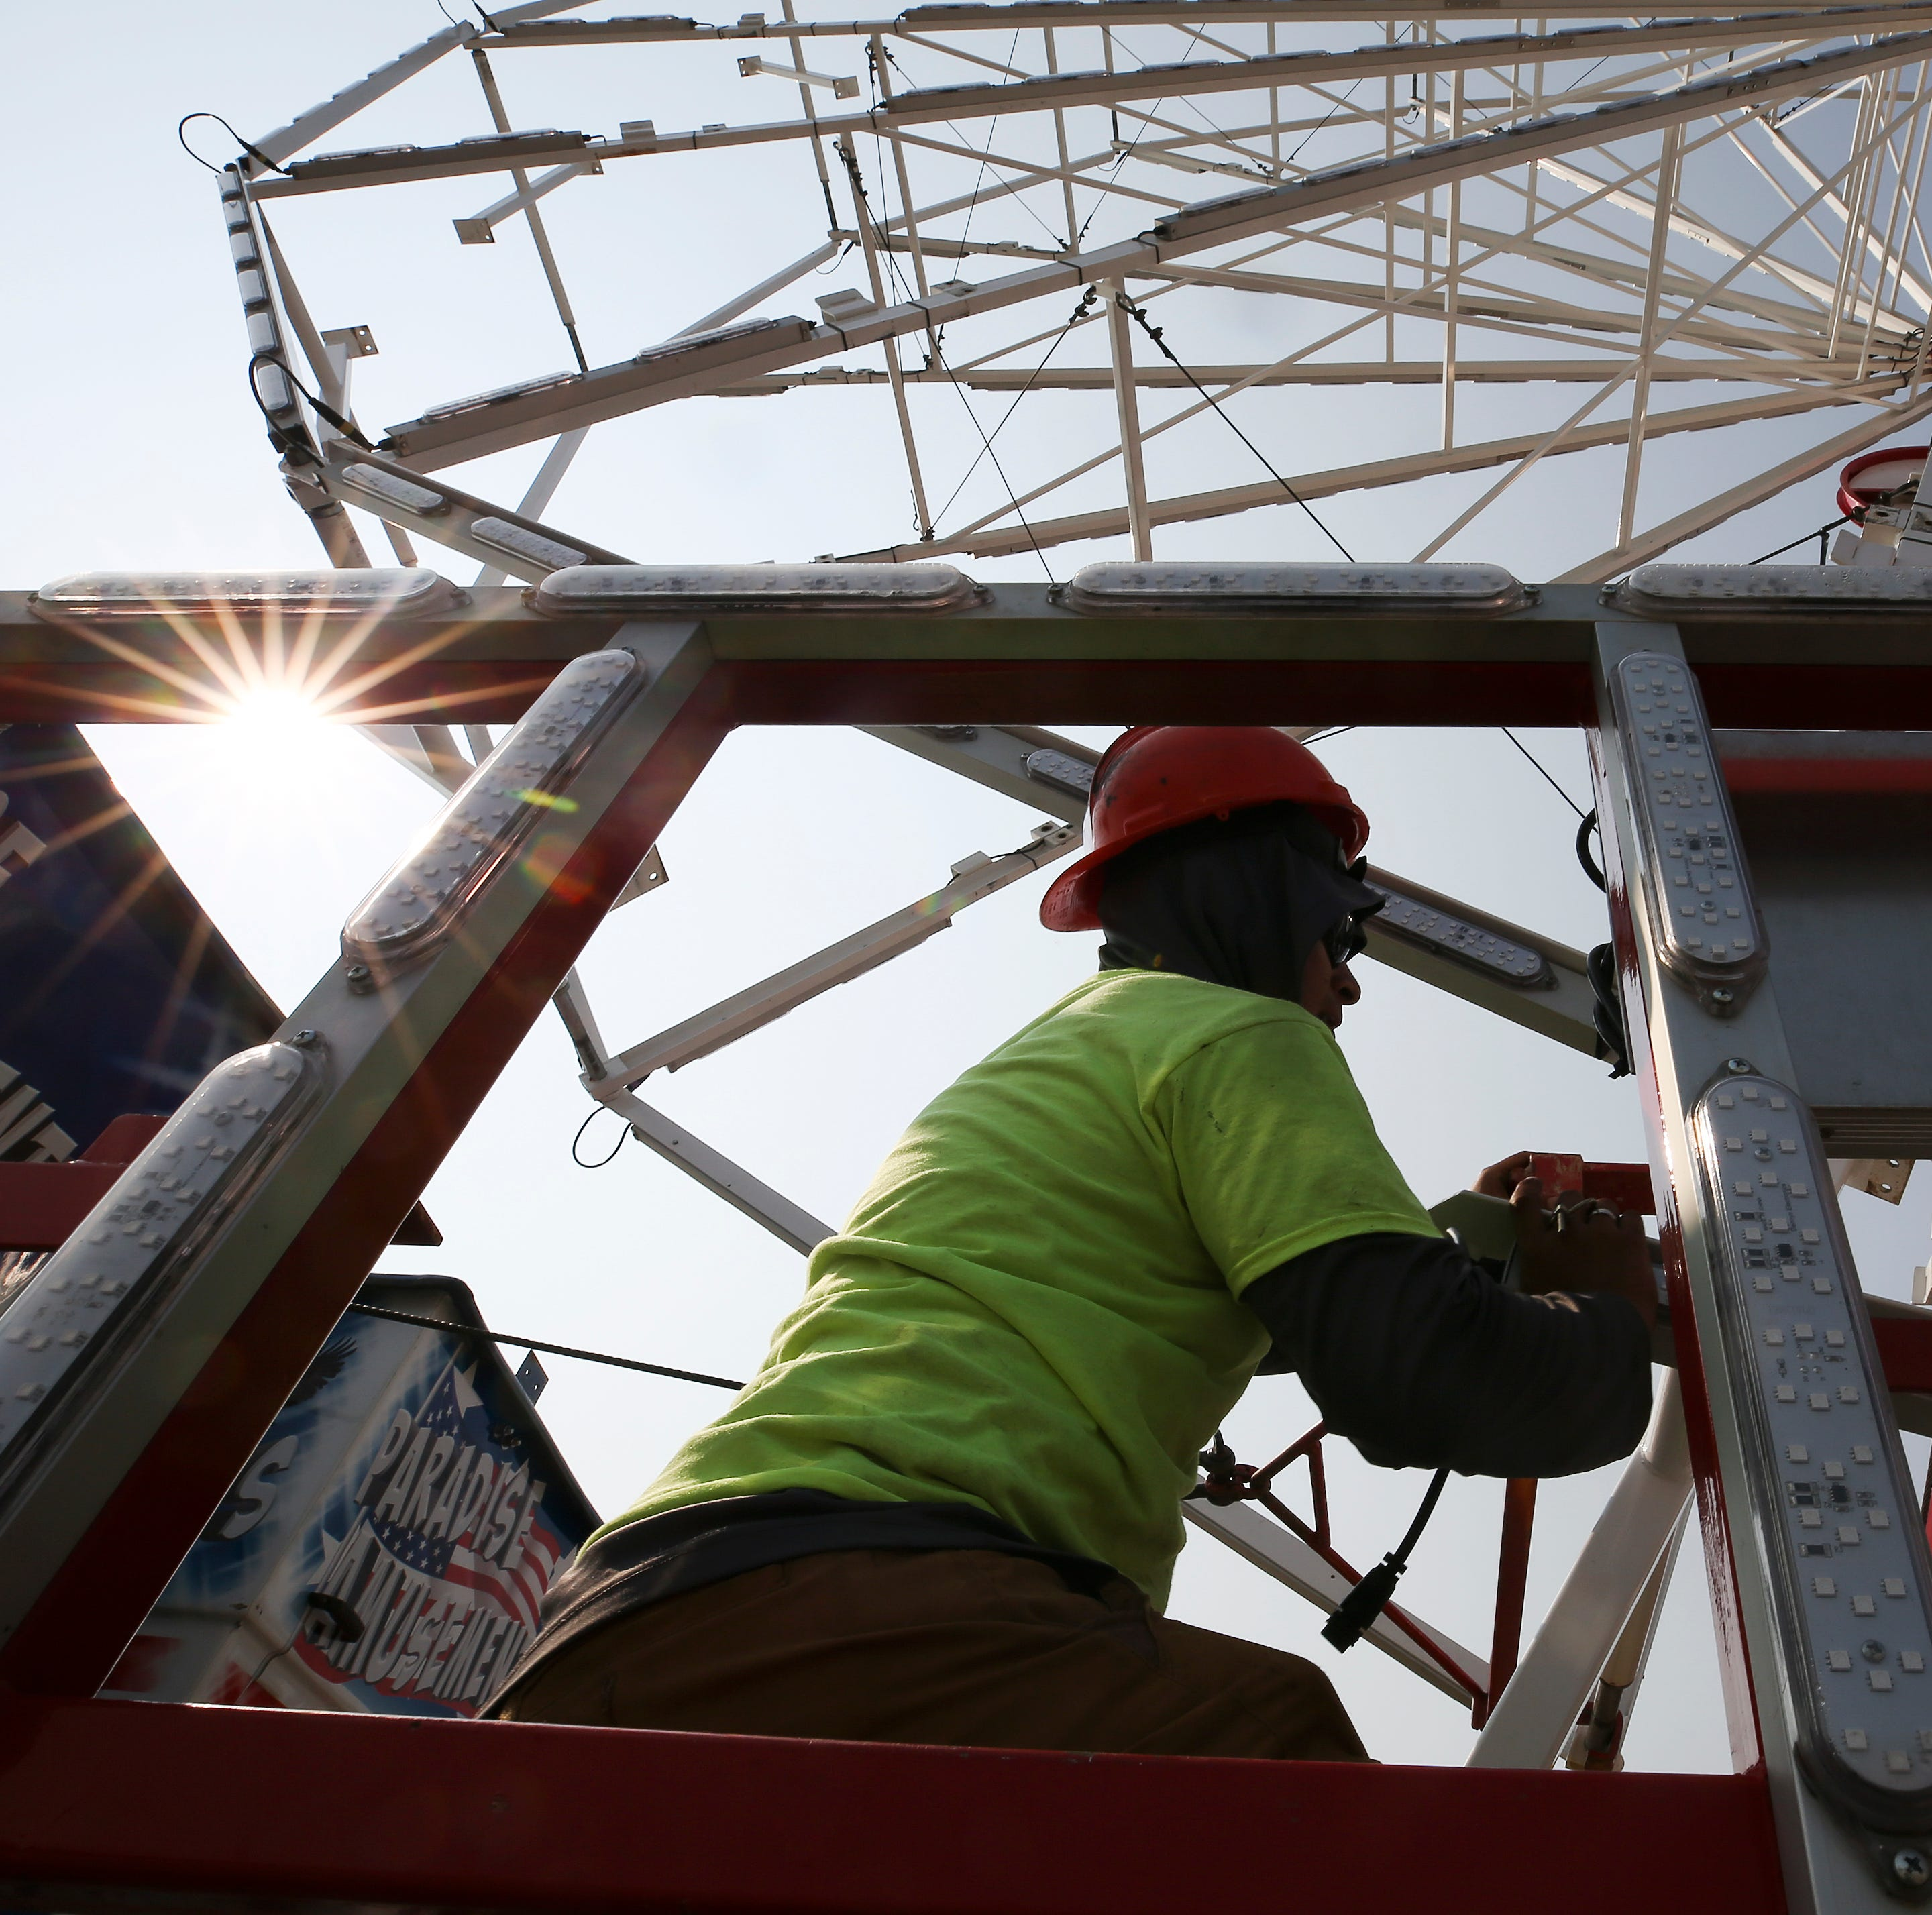 Crews assemble the rides for the Kentucky State Fair